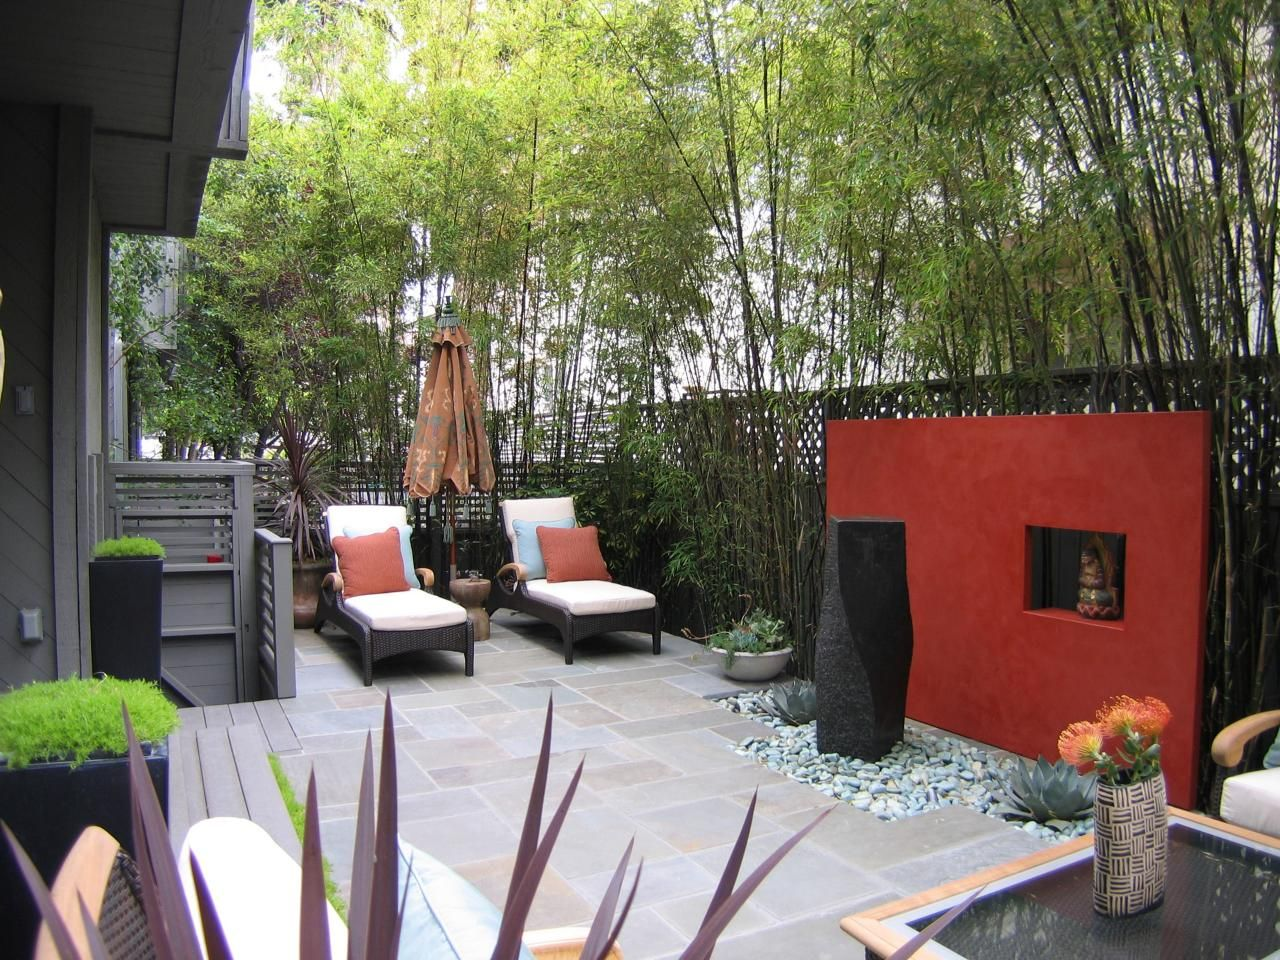 Patio privacy wall ideas - Backyard Privacy Ideas